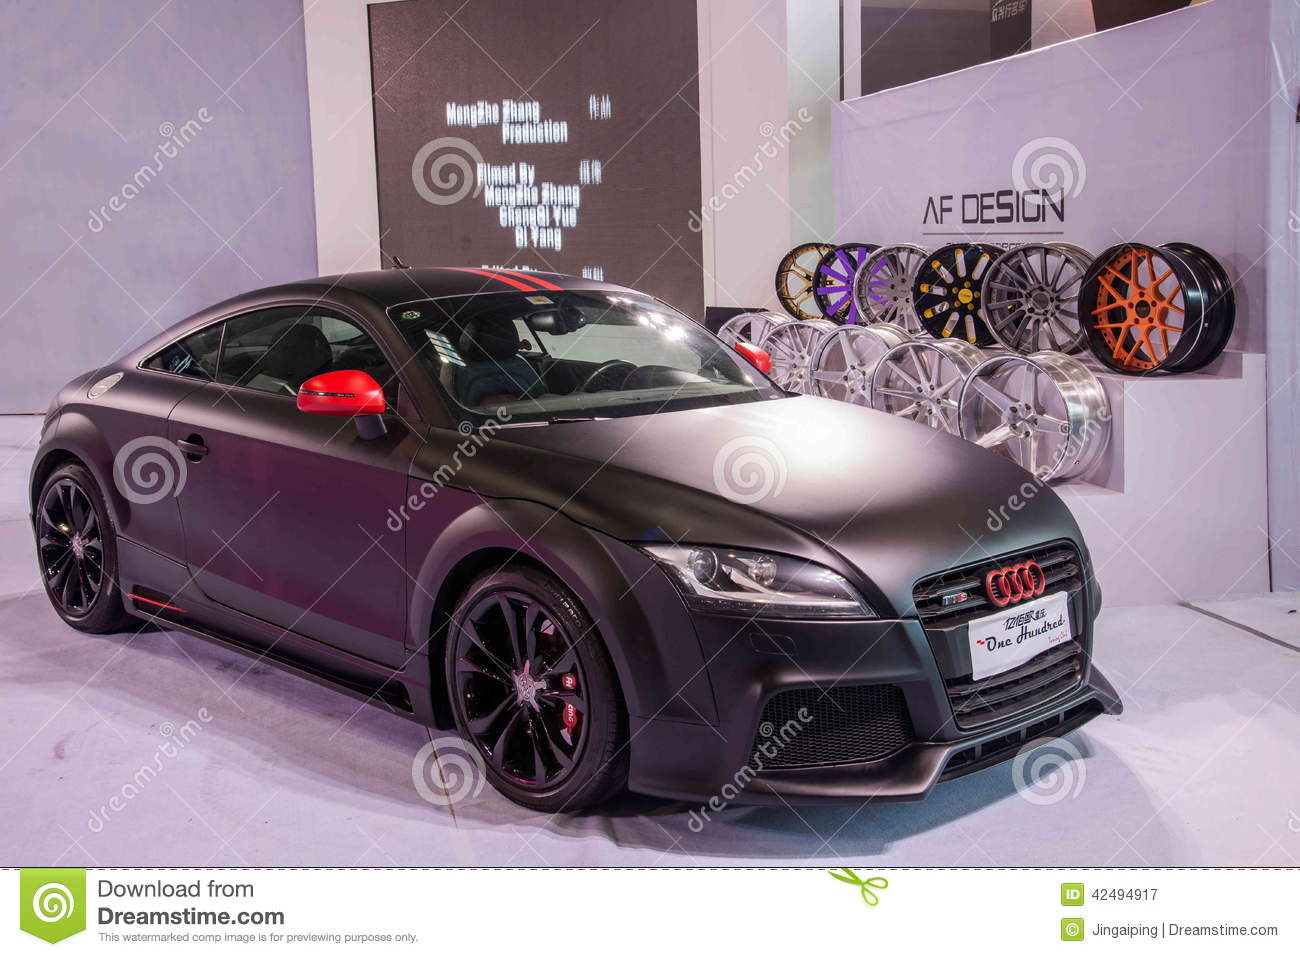 Chongqing Auto Show Audi Series Car Editorial Photography  Image 42494917